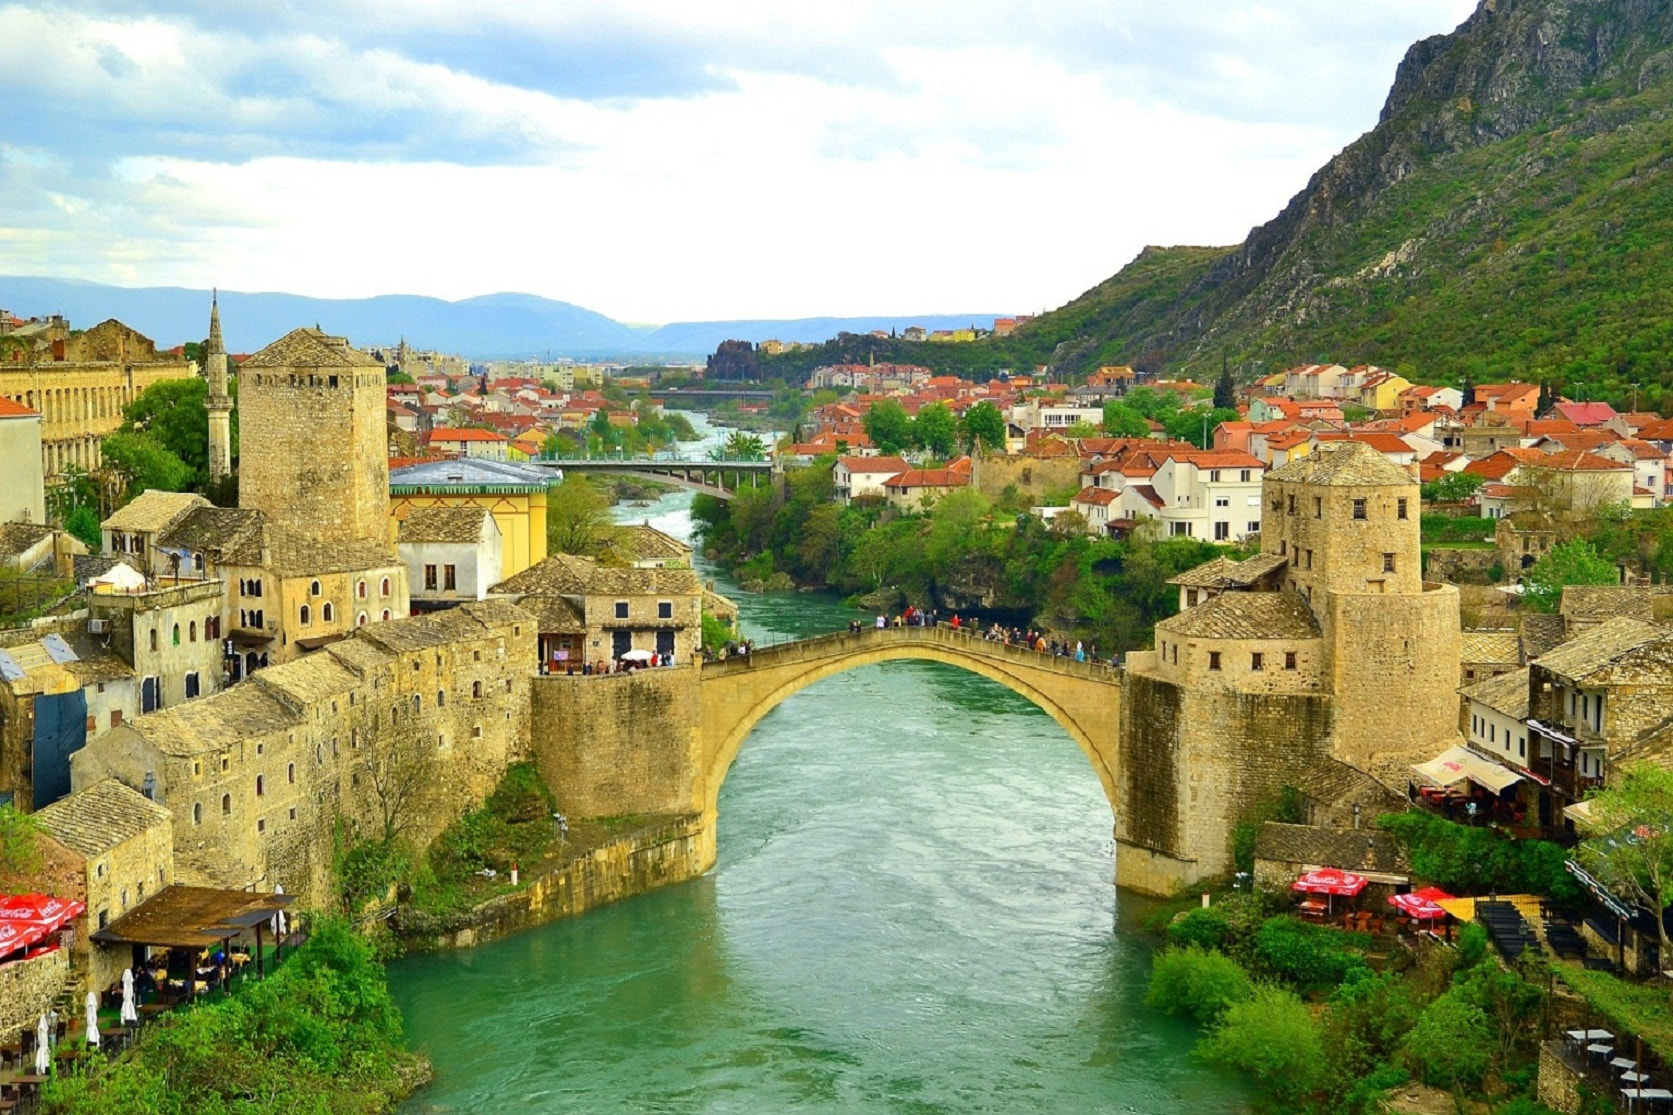 Photograph Mostar Bridge by Zeynep Ugurdag on 500px